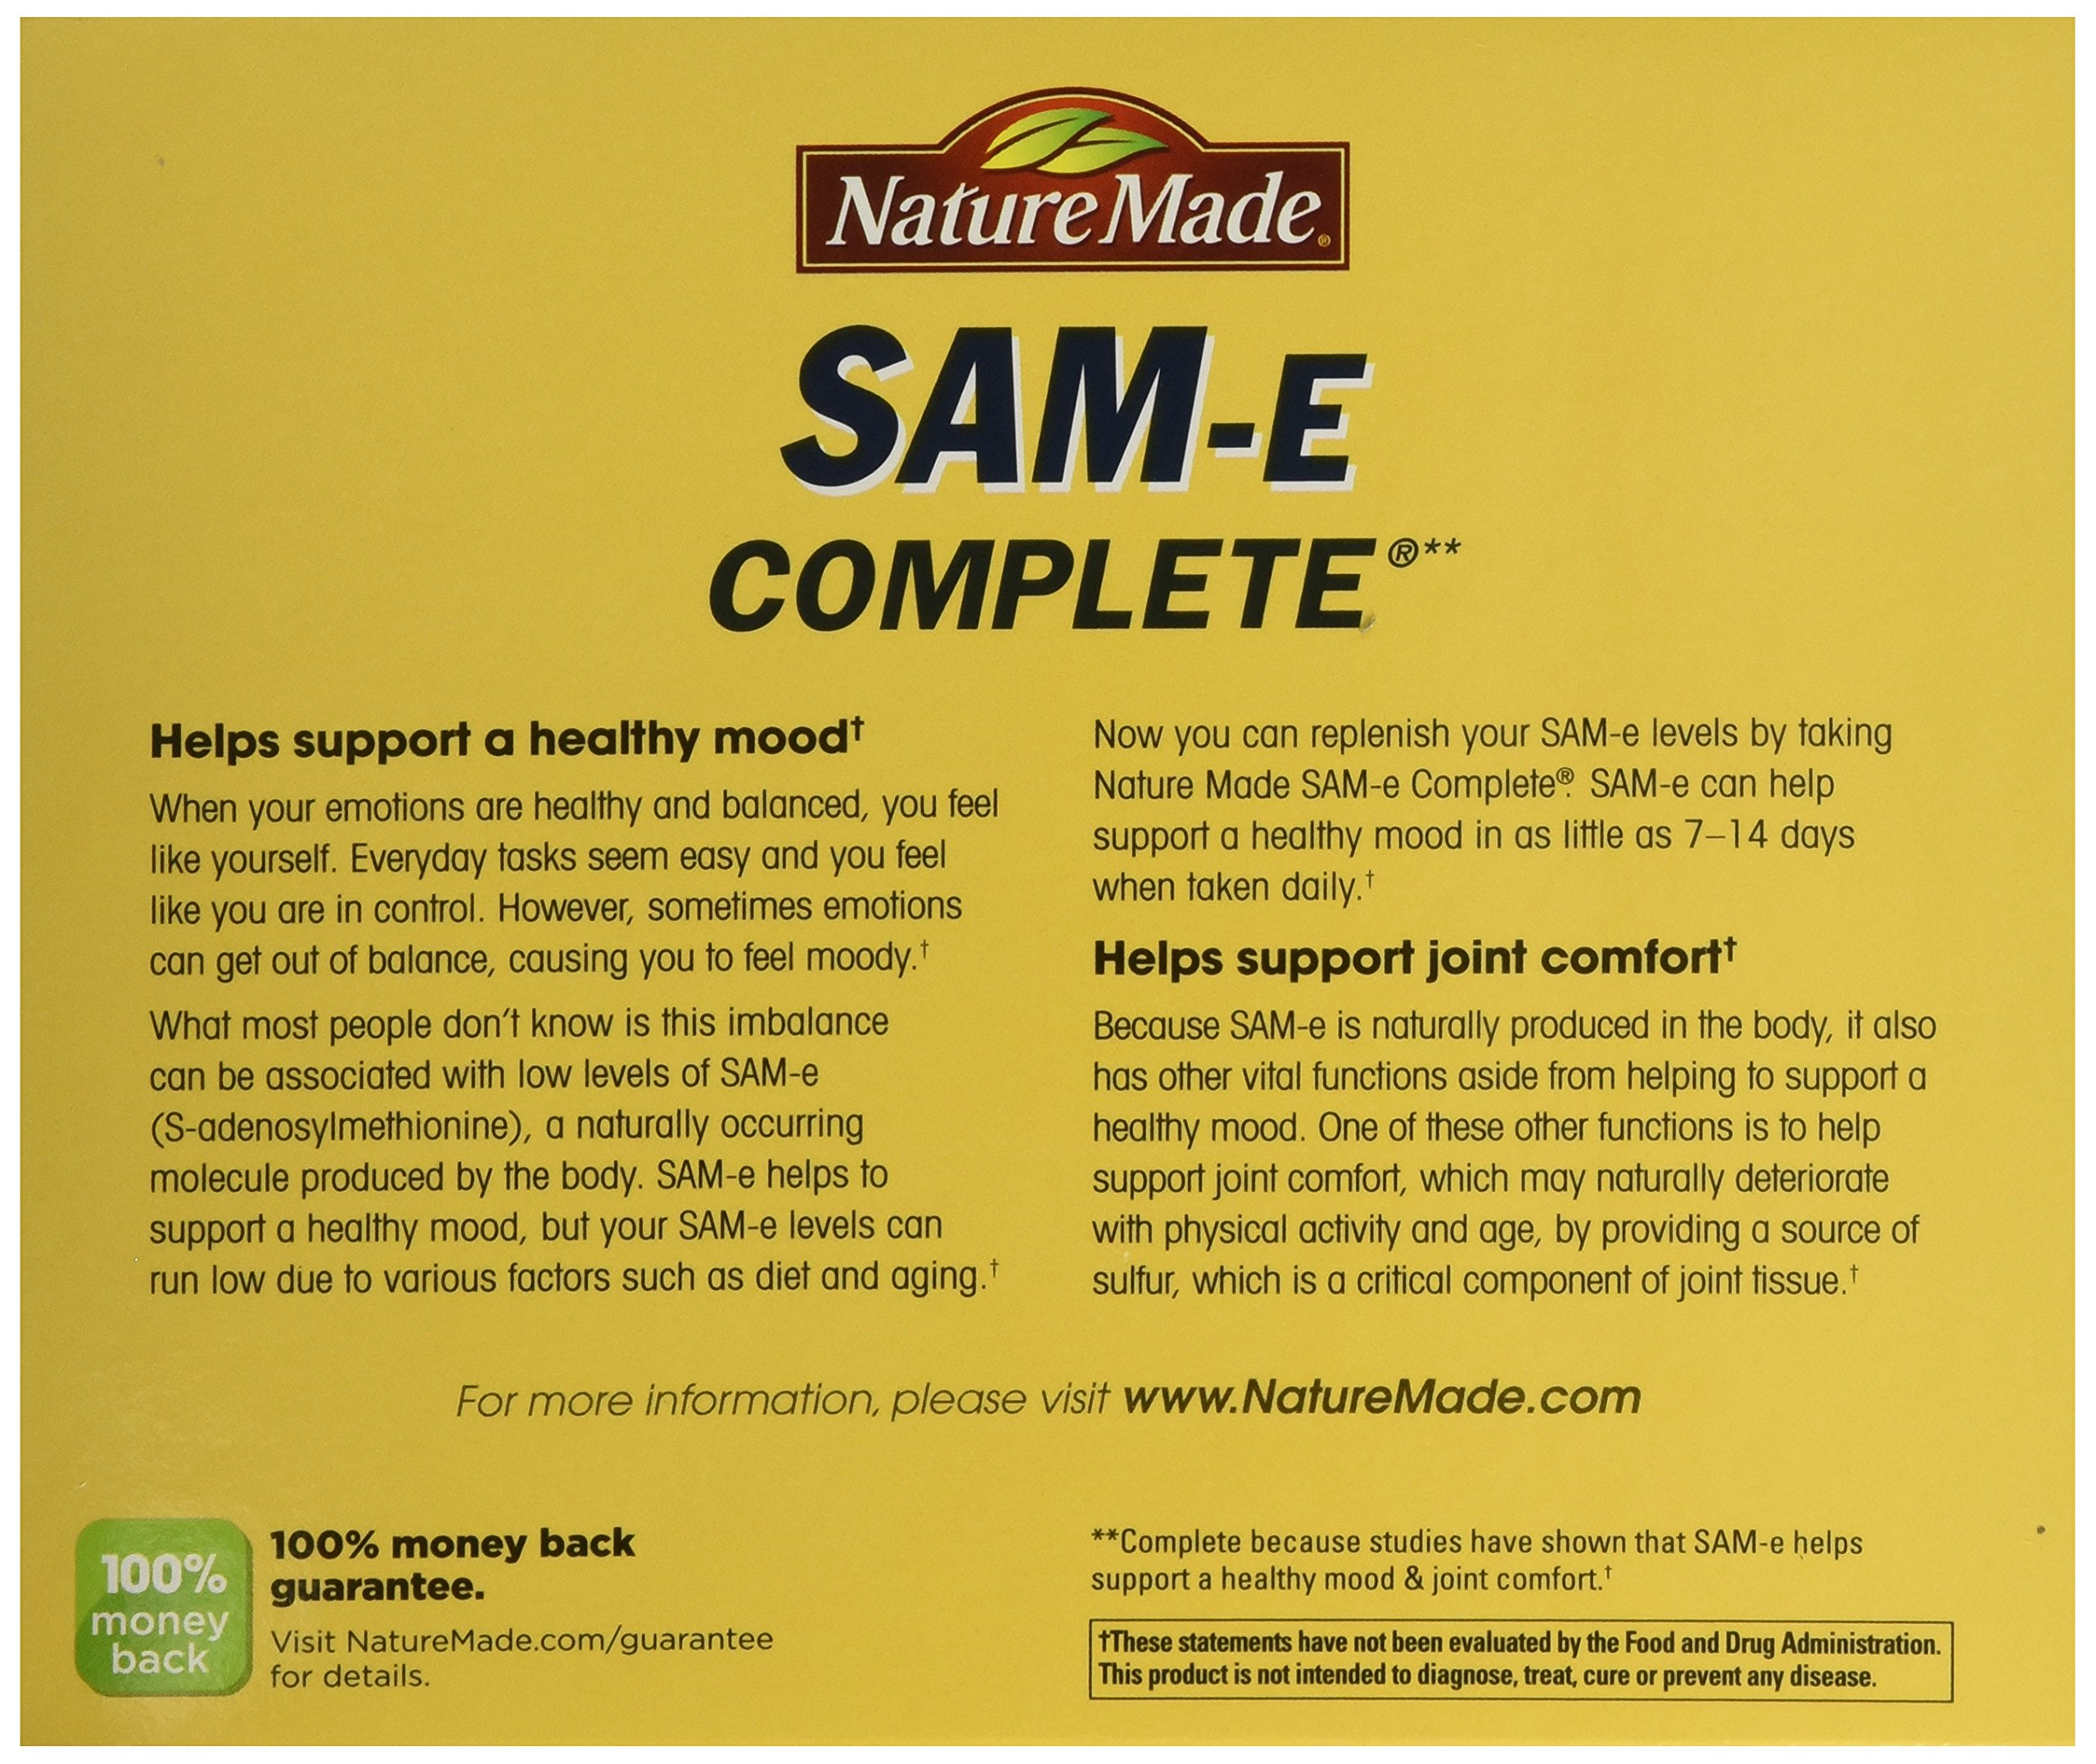 Nature Made SAM-e Complete 400 mg - 2 Boxes, 60 Enteric Tablets Each by Nature Made (Image #4)